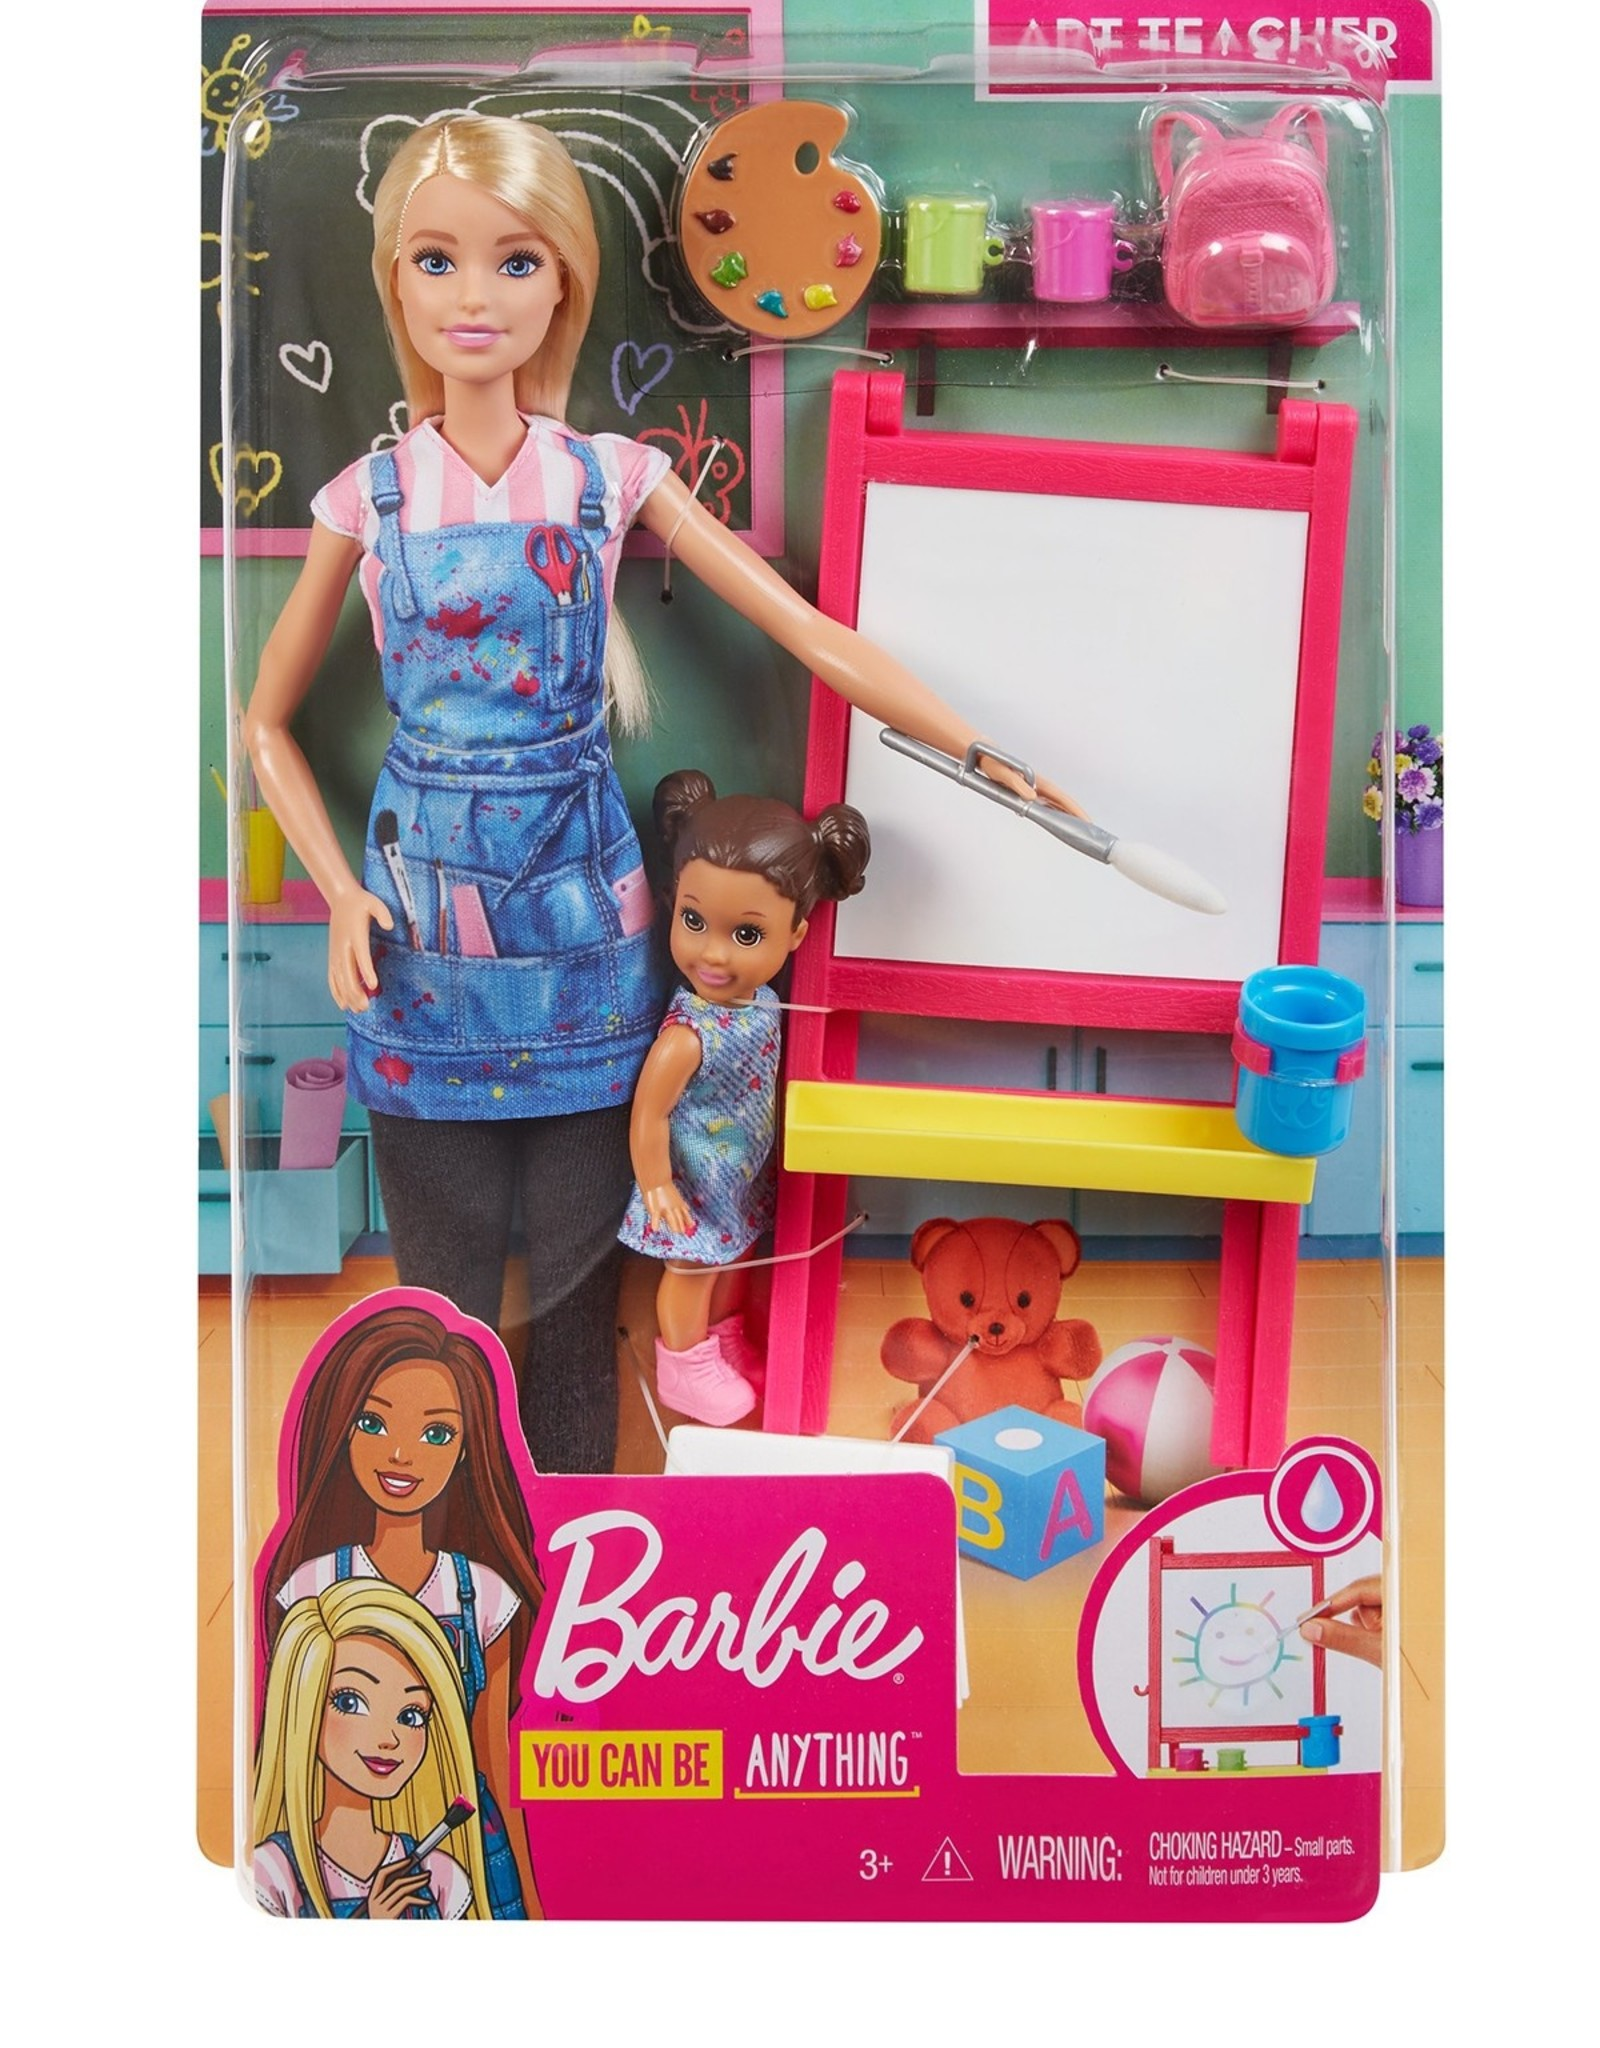 Barbie Barbie Art Teacher Doll